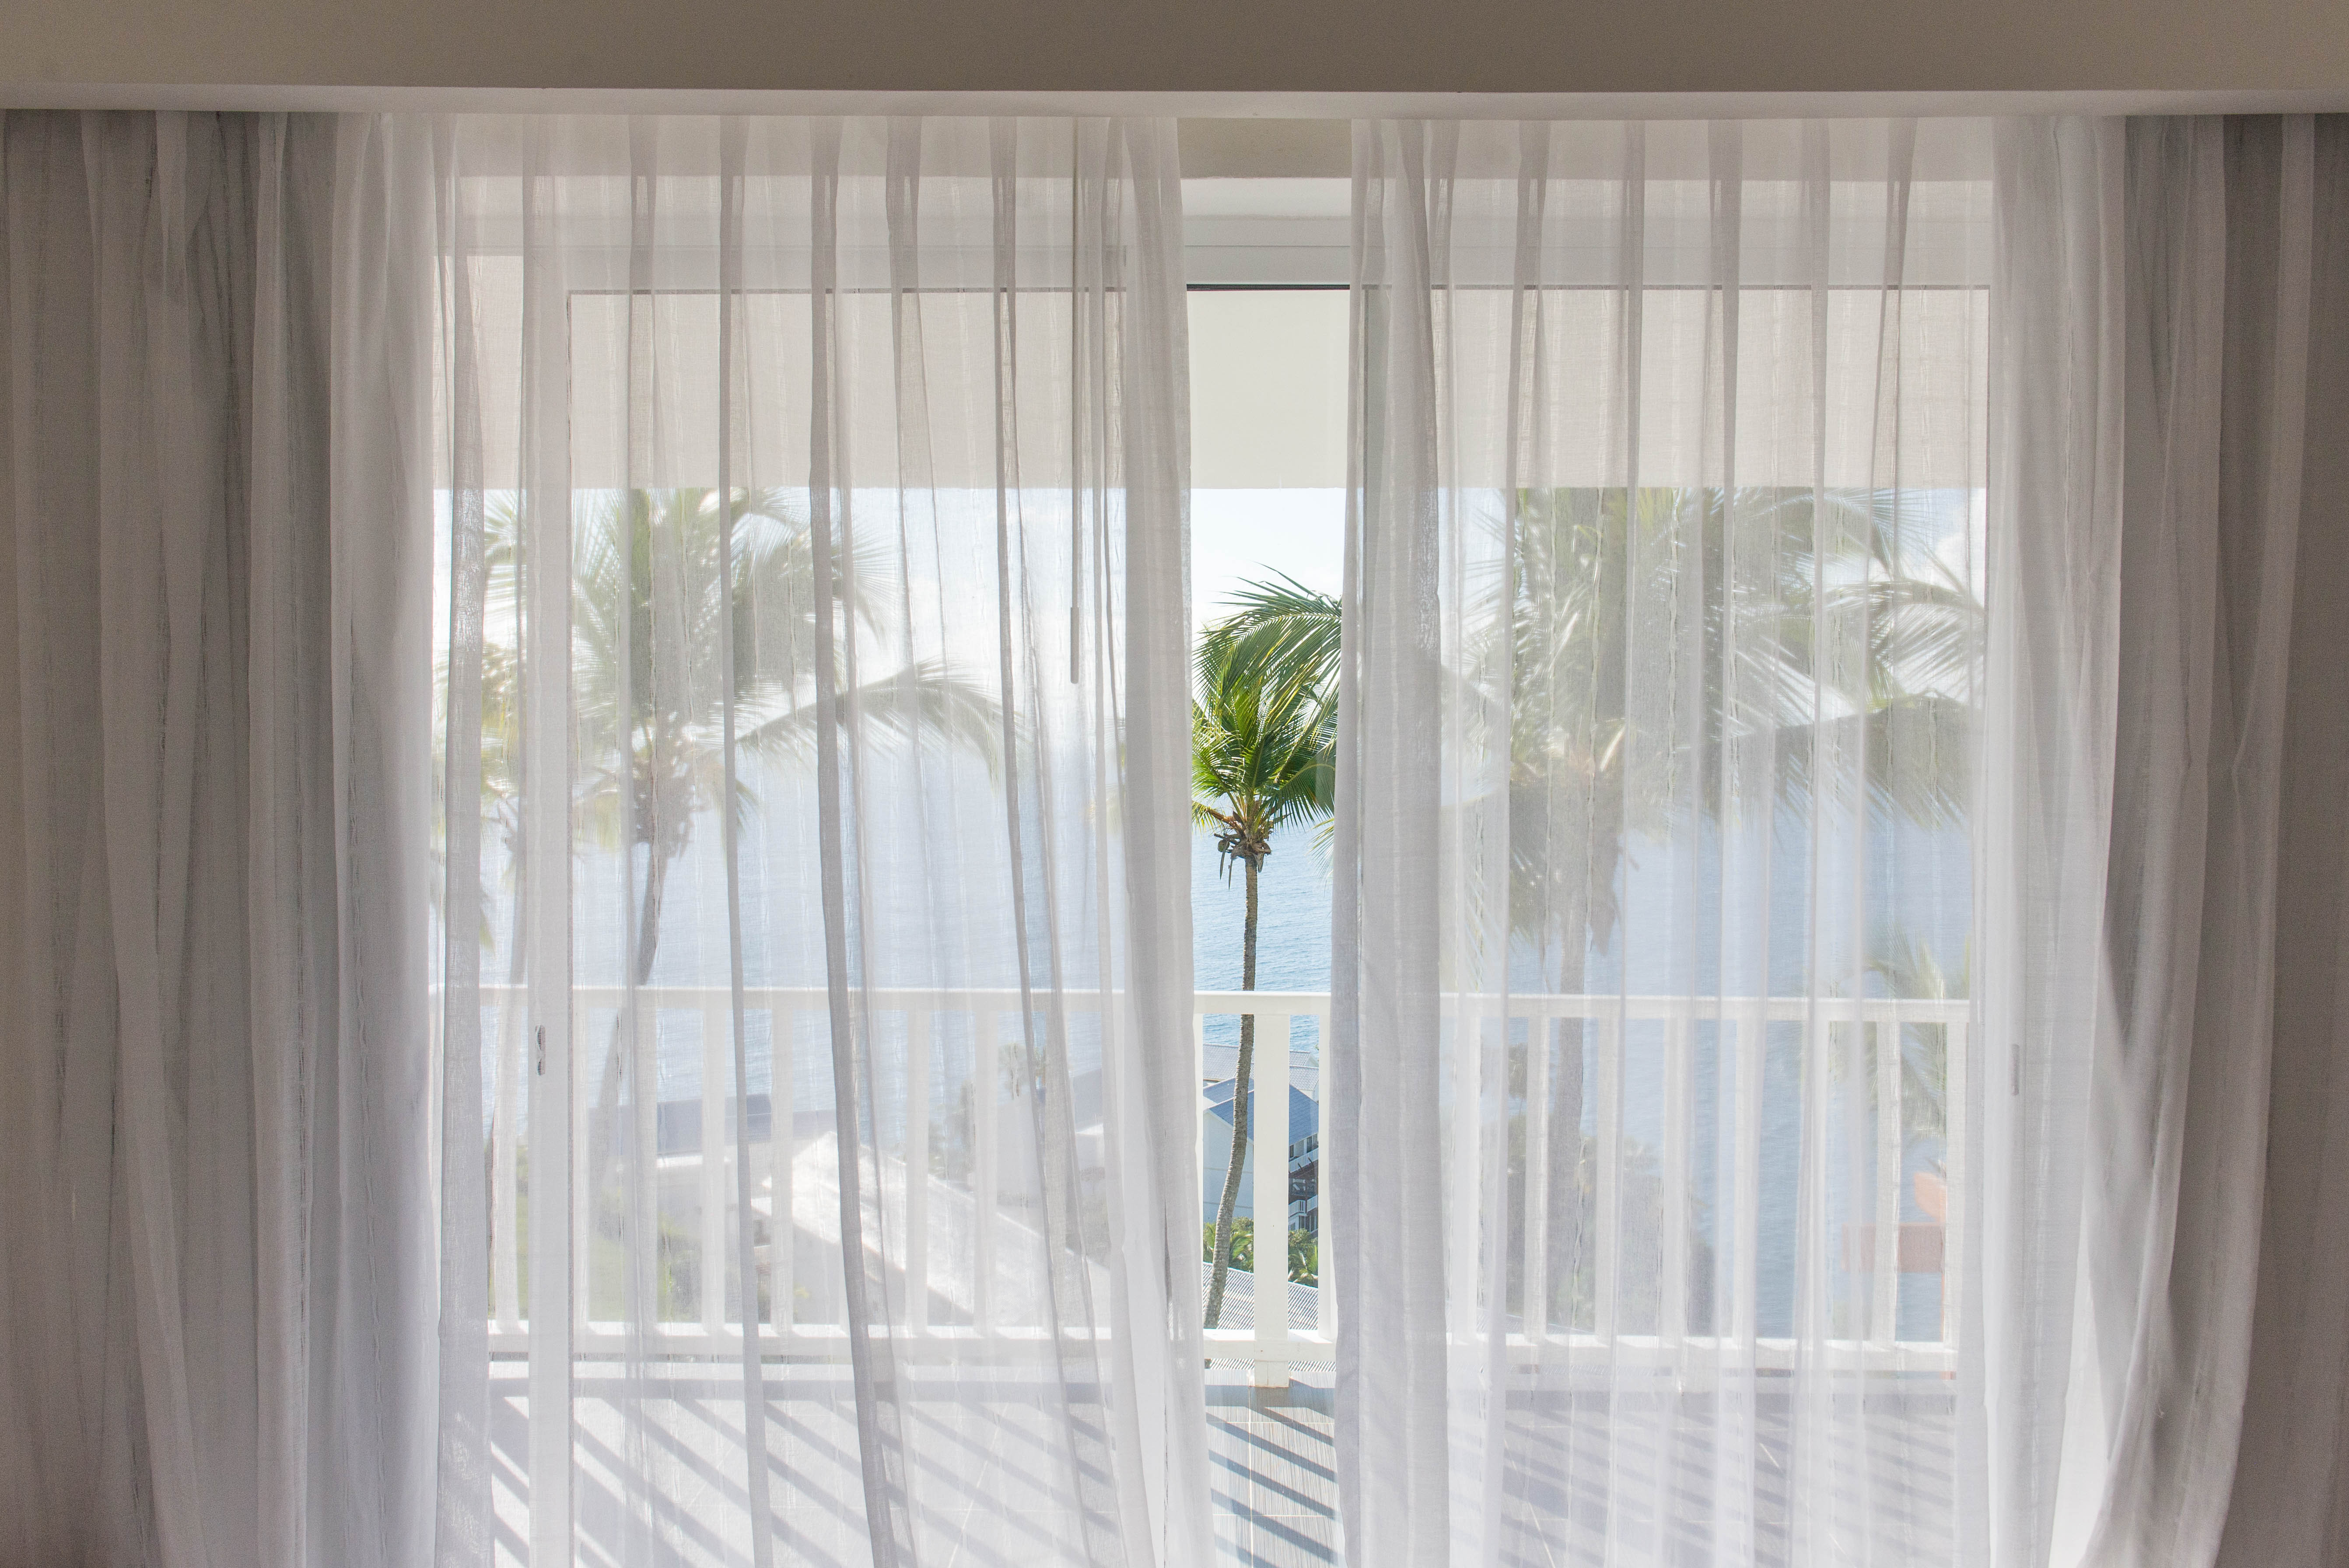 Luckily, the rooms are laid out so the view is always there.